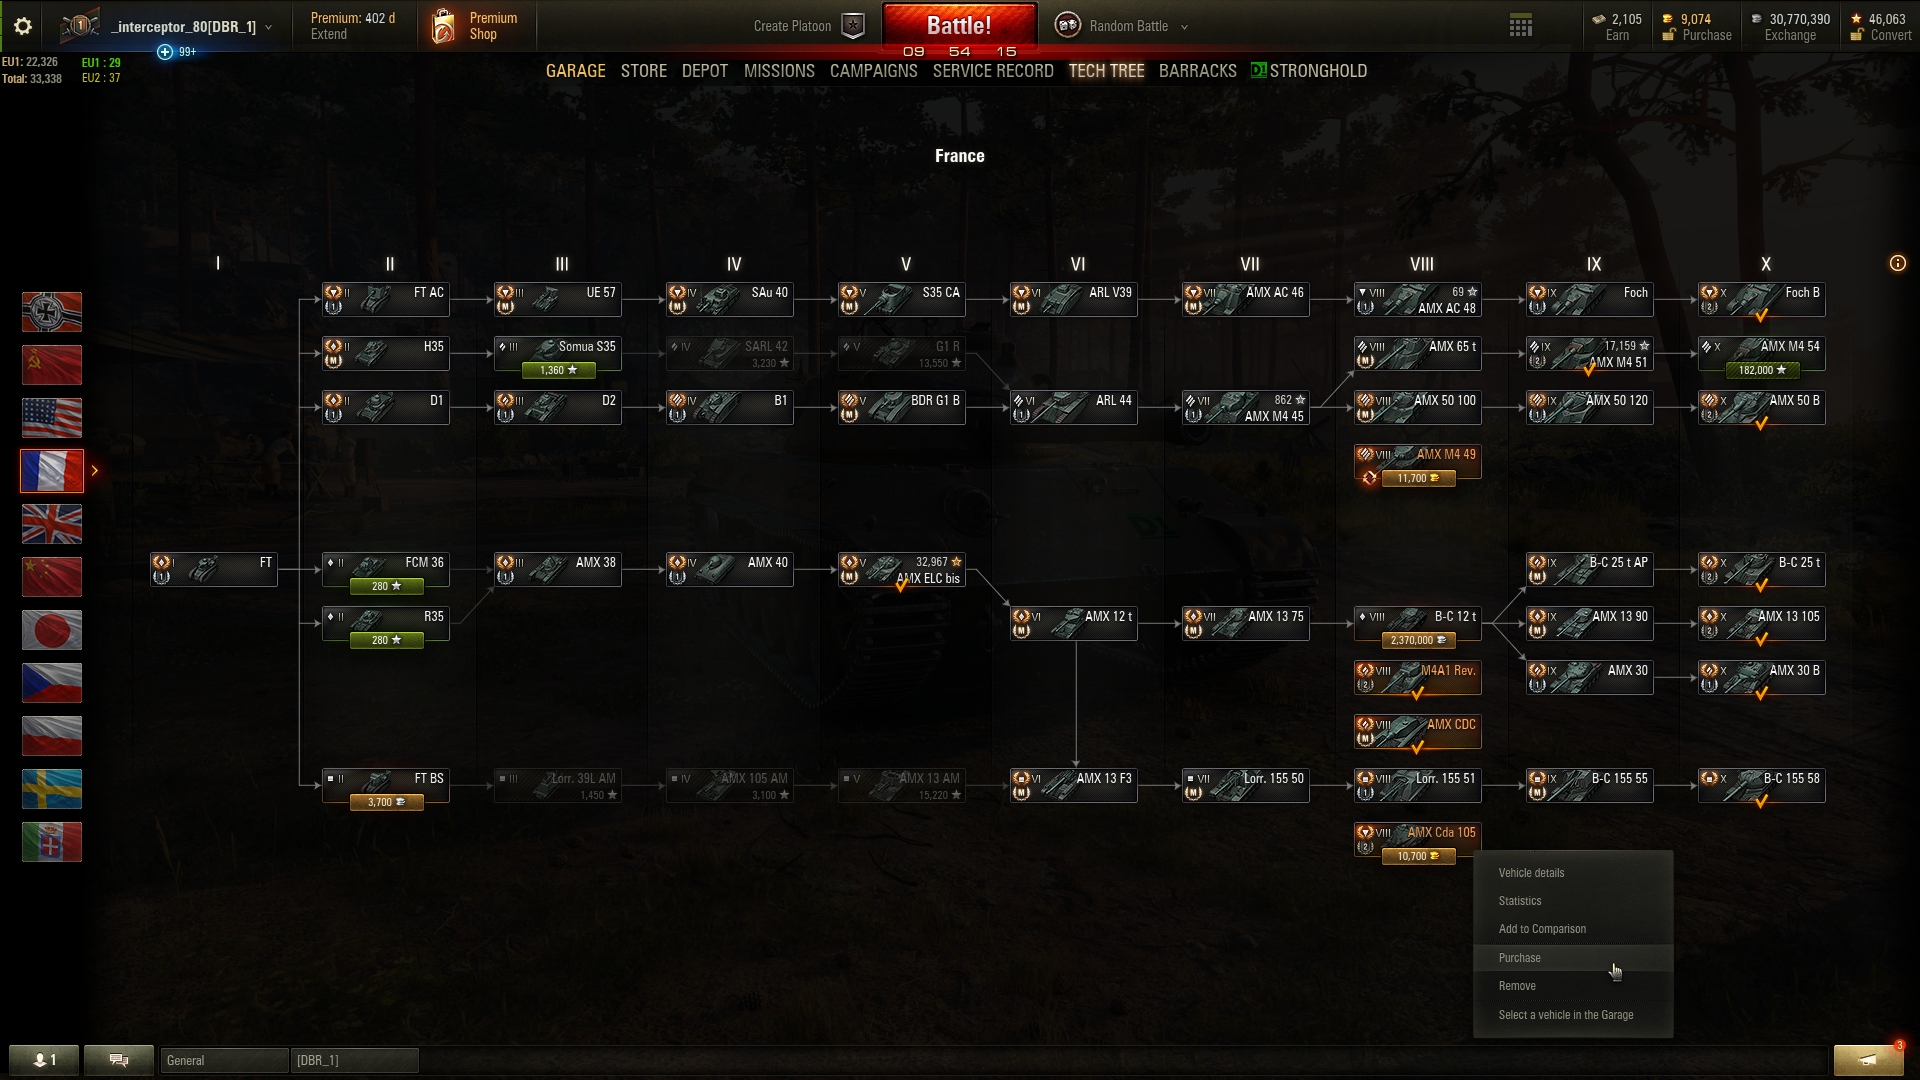 3 tanks exclided from Trade In (Lowe, AMX CDA105,FV4202